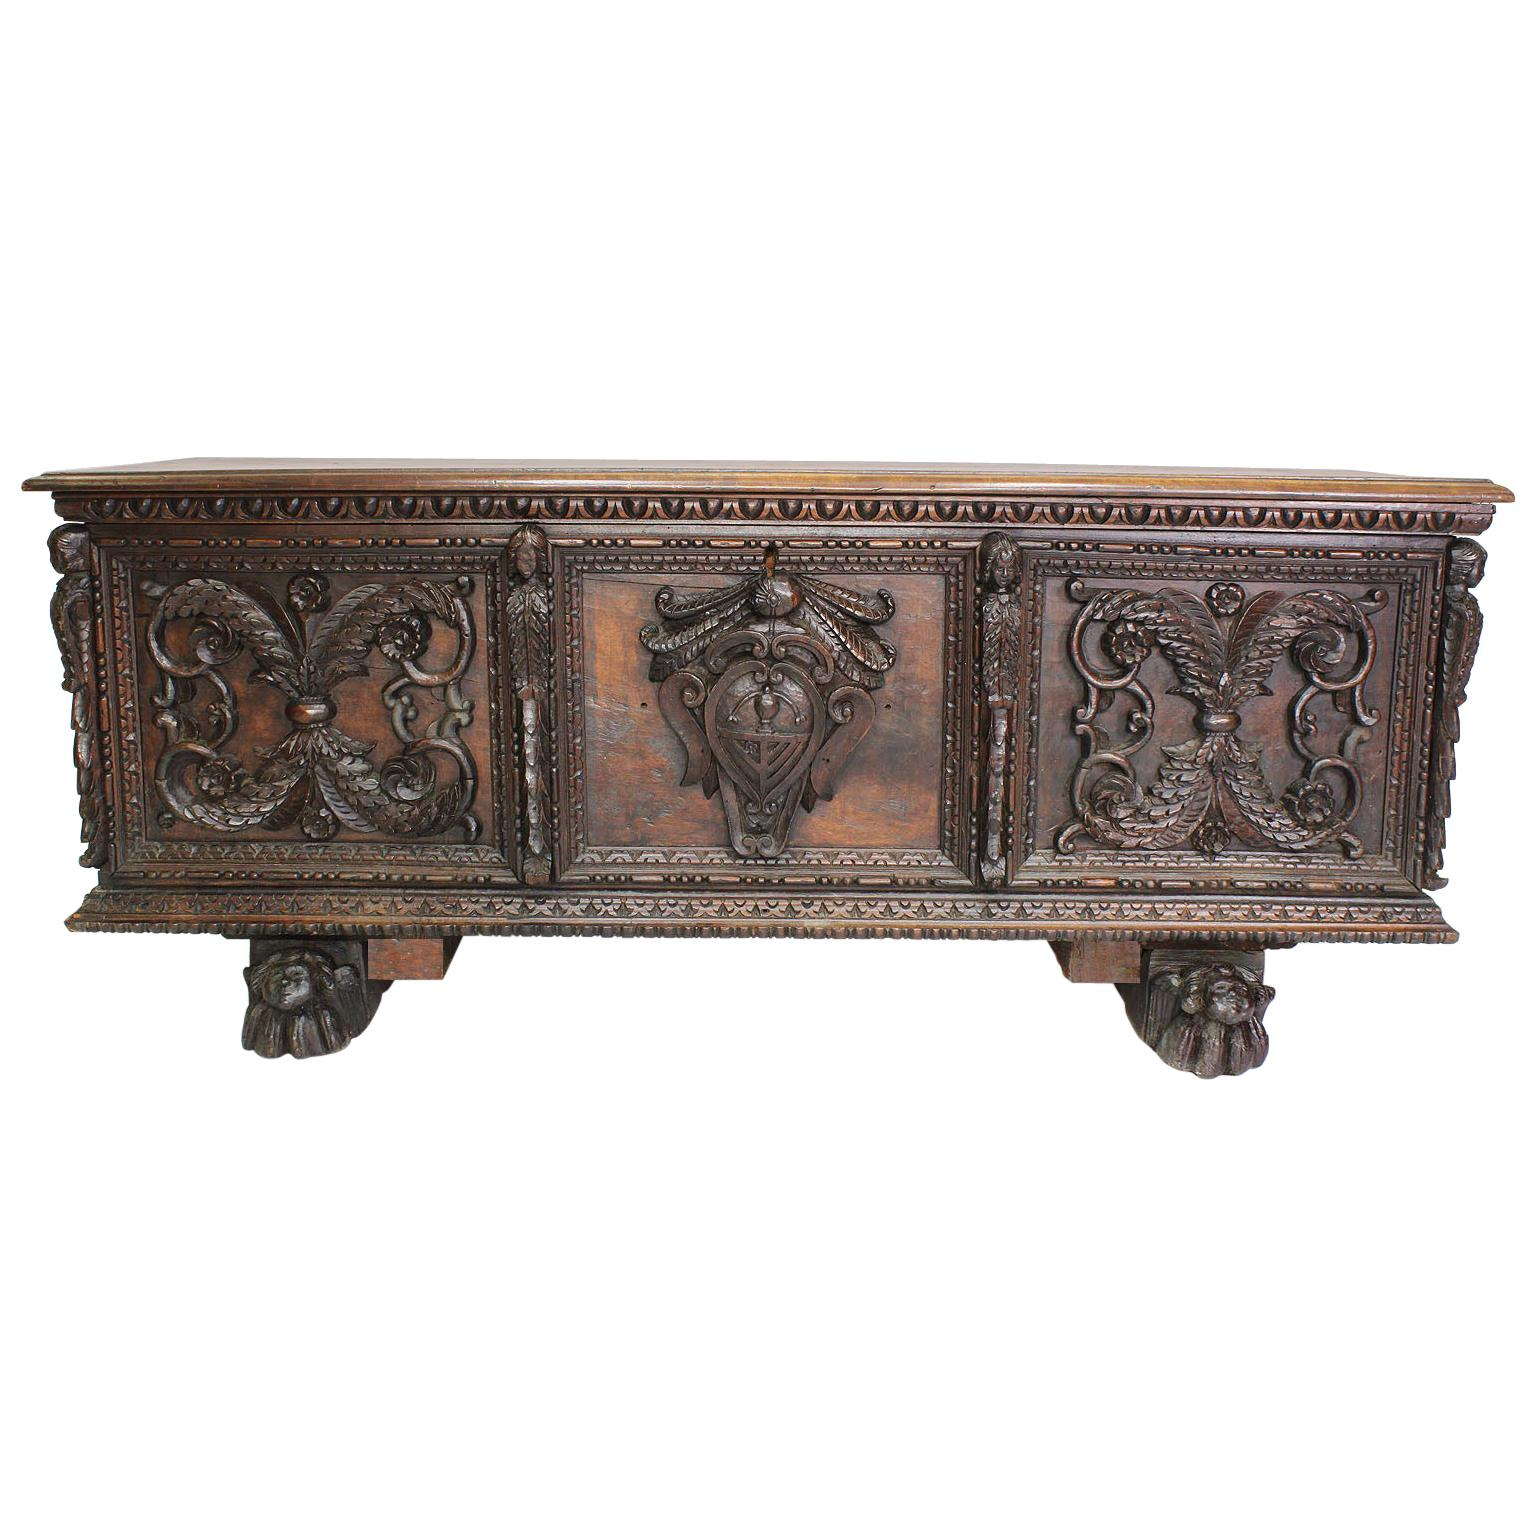 Italian 19th Century Baroque Style Carved Walnut Figural Cassone Chest-Trunk